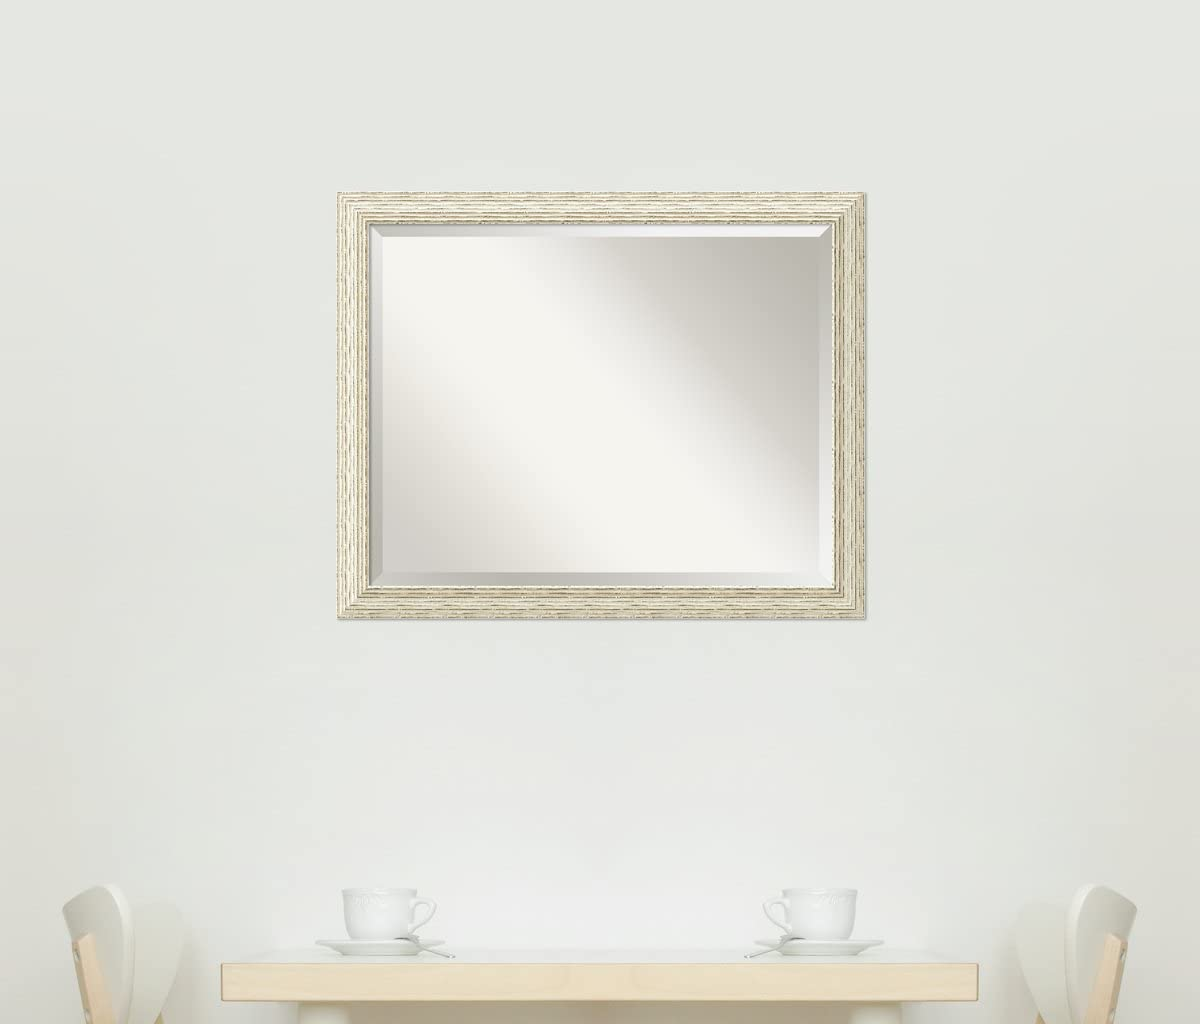 Country White Wash Mirror for Wall Solid Wood Wall Mirrors Medium Wall Mirror 24.25 x 24.25 Amanti Art Framed Mirrors for Wall